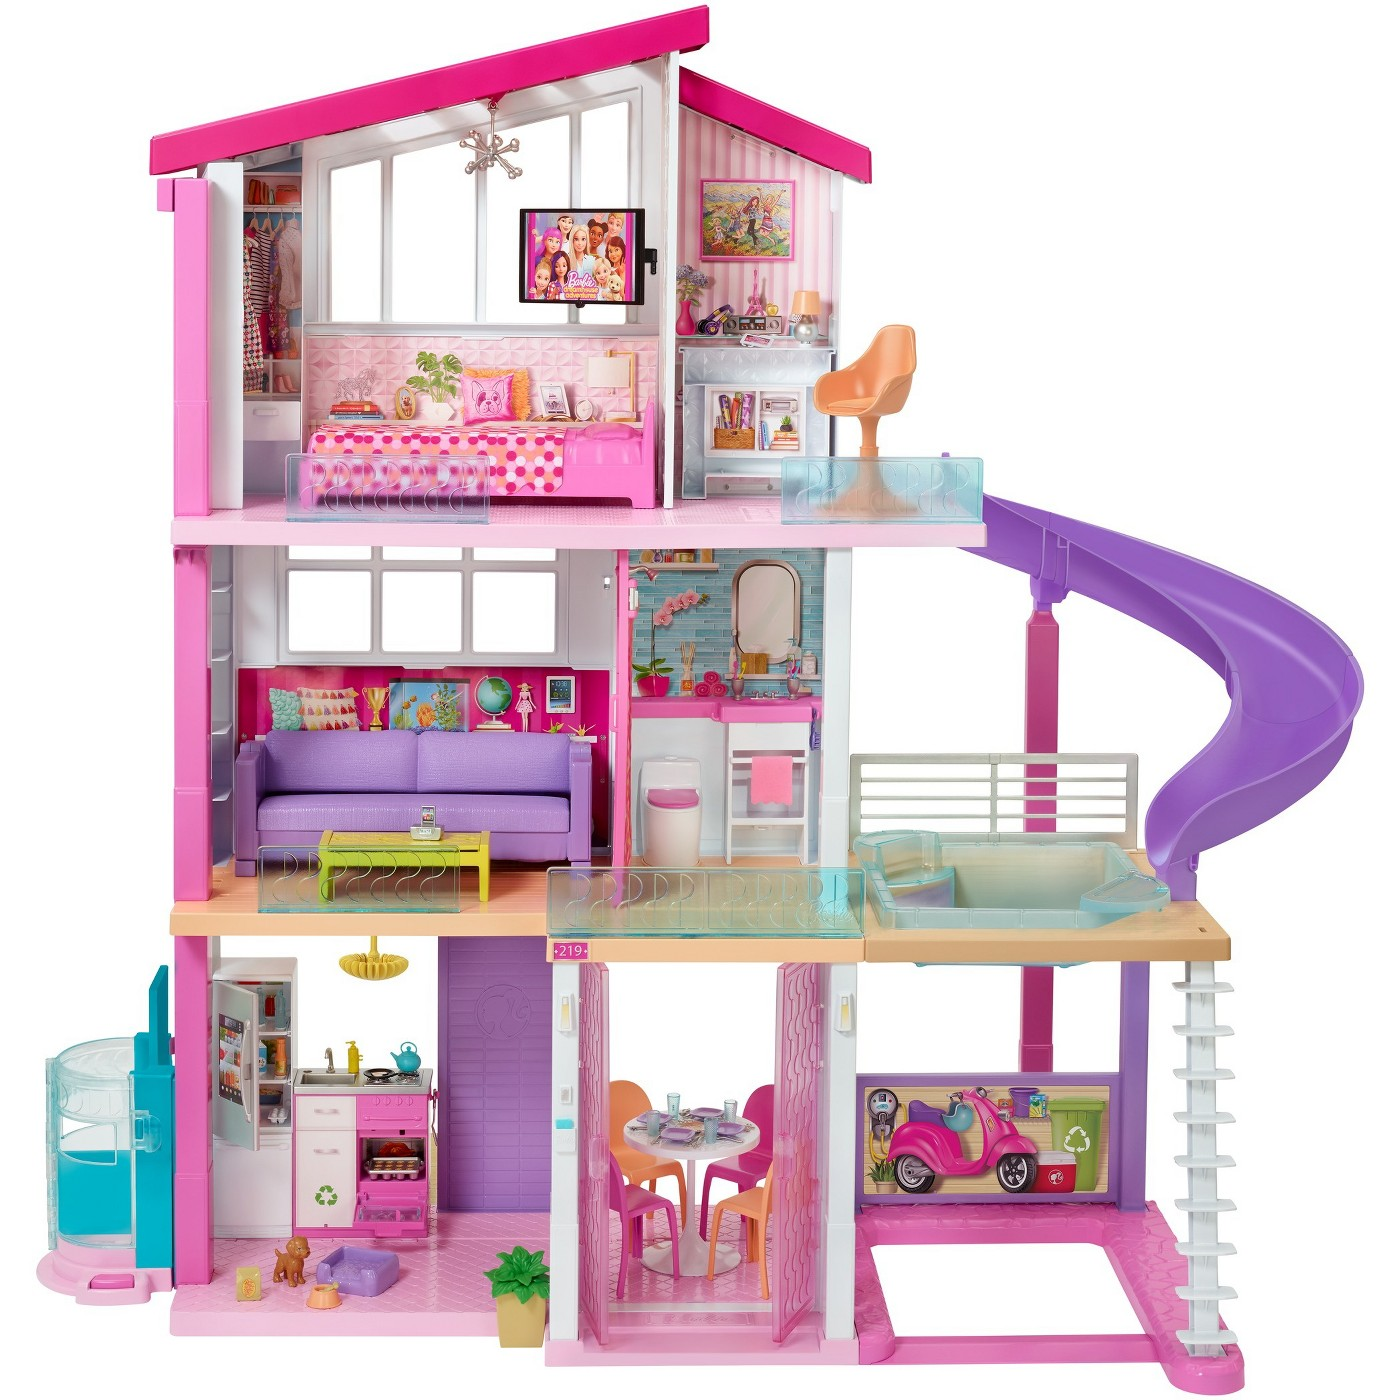 Barbie Dreamhouse Playset - image 1 of 20